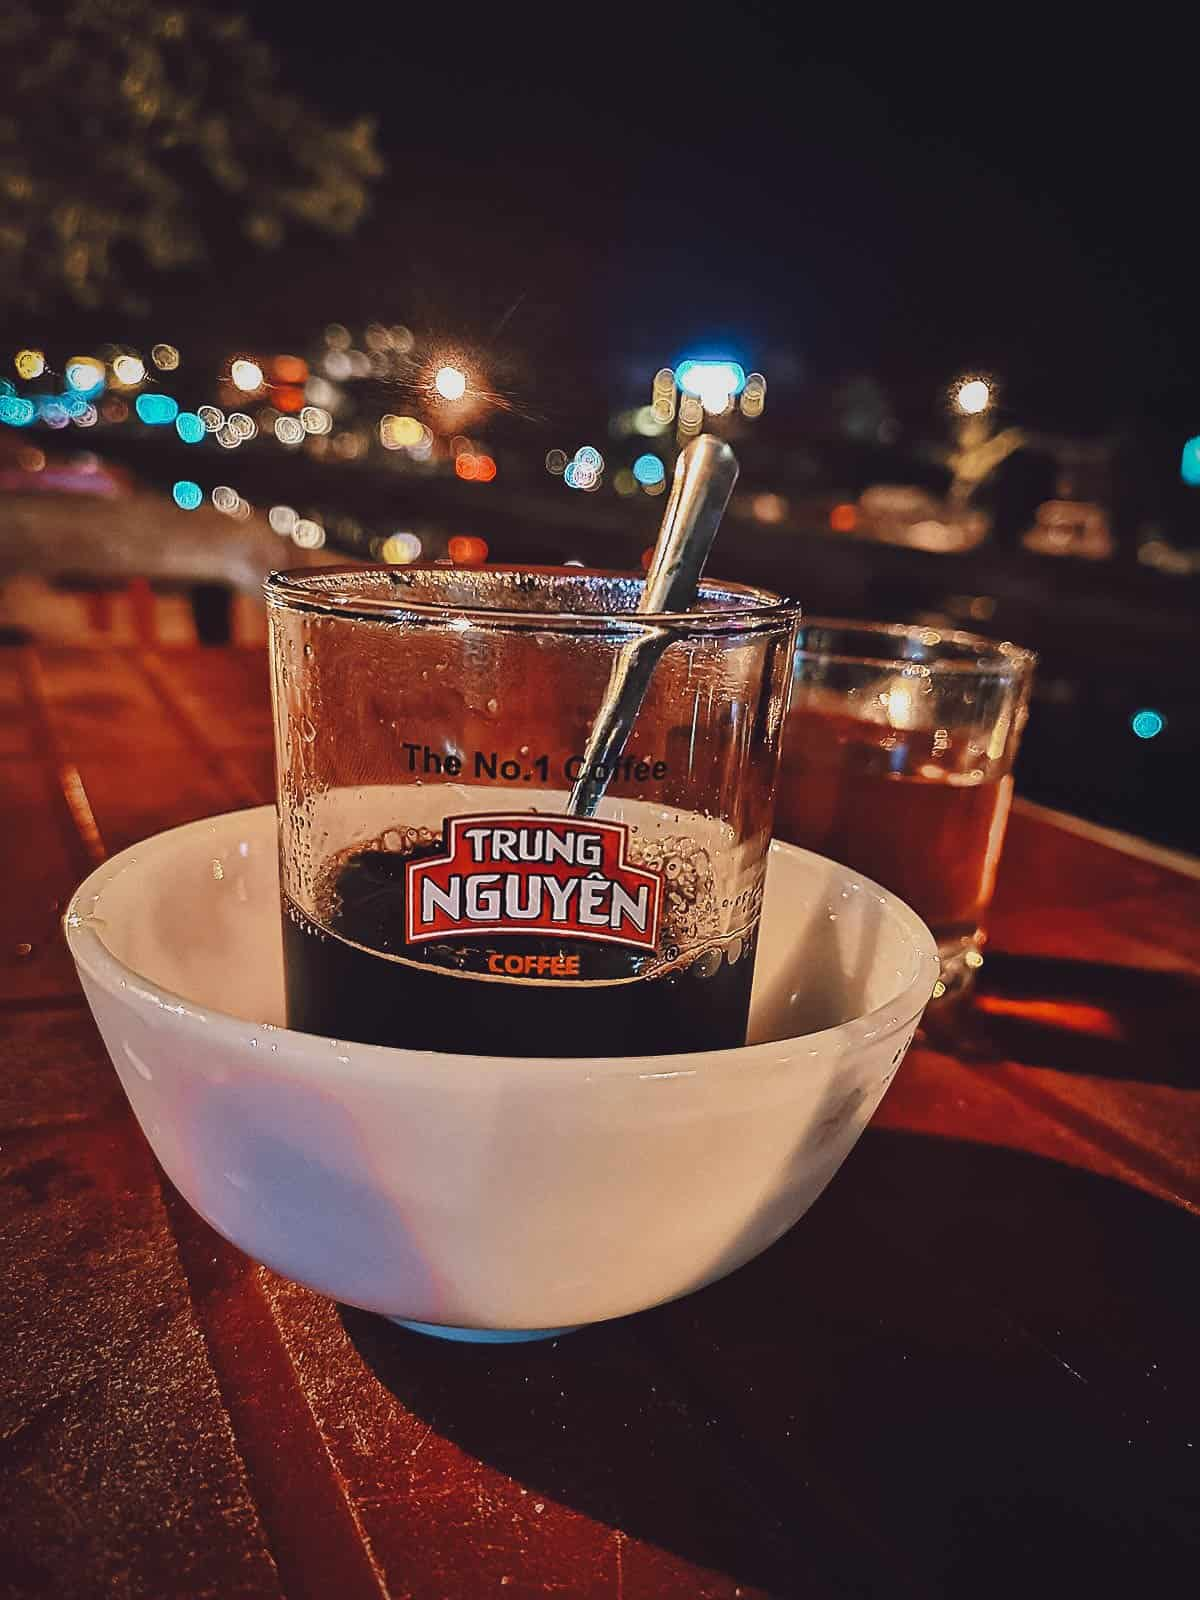 Black coffee by the river in Hoi An, Vietnam